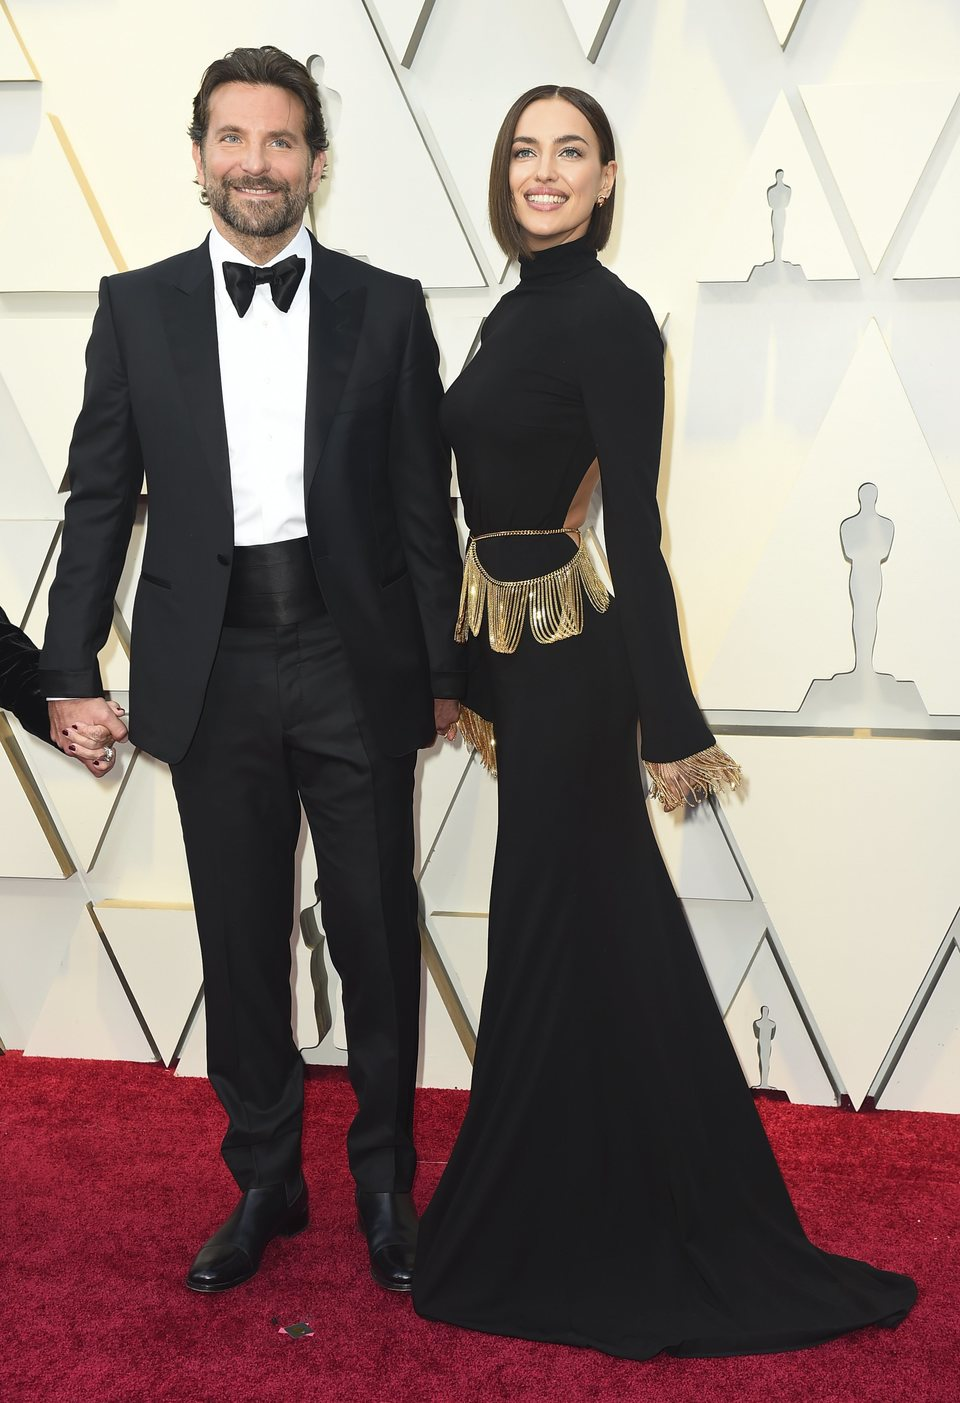 Bradley Cooper and Irina Shayk on the red carpet at the Oscars 2019